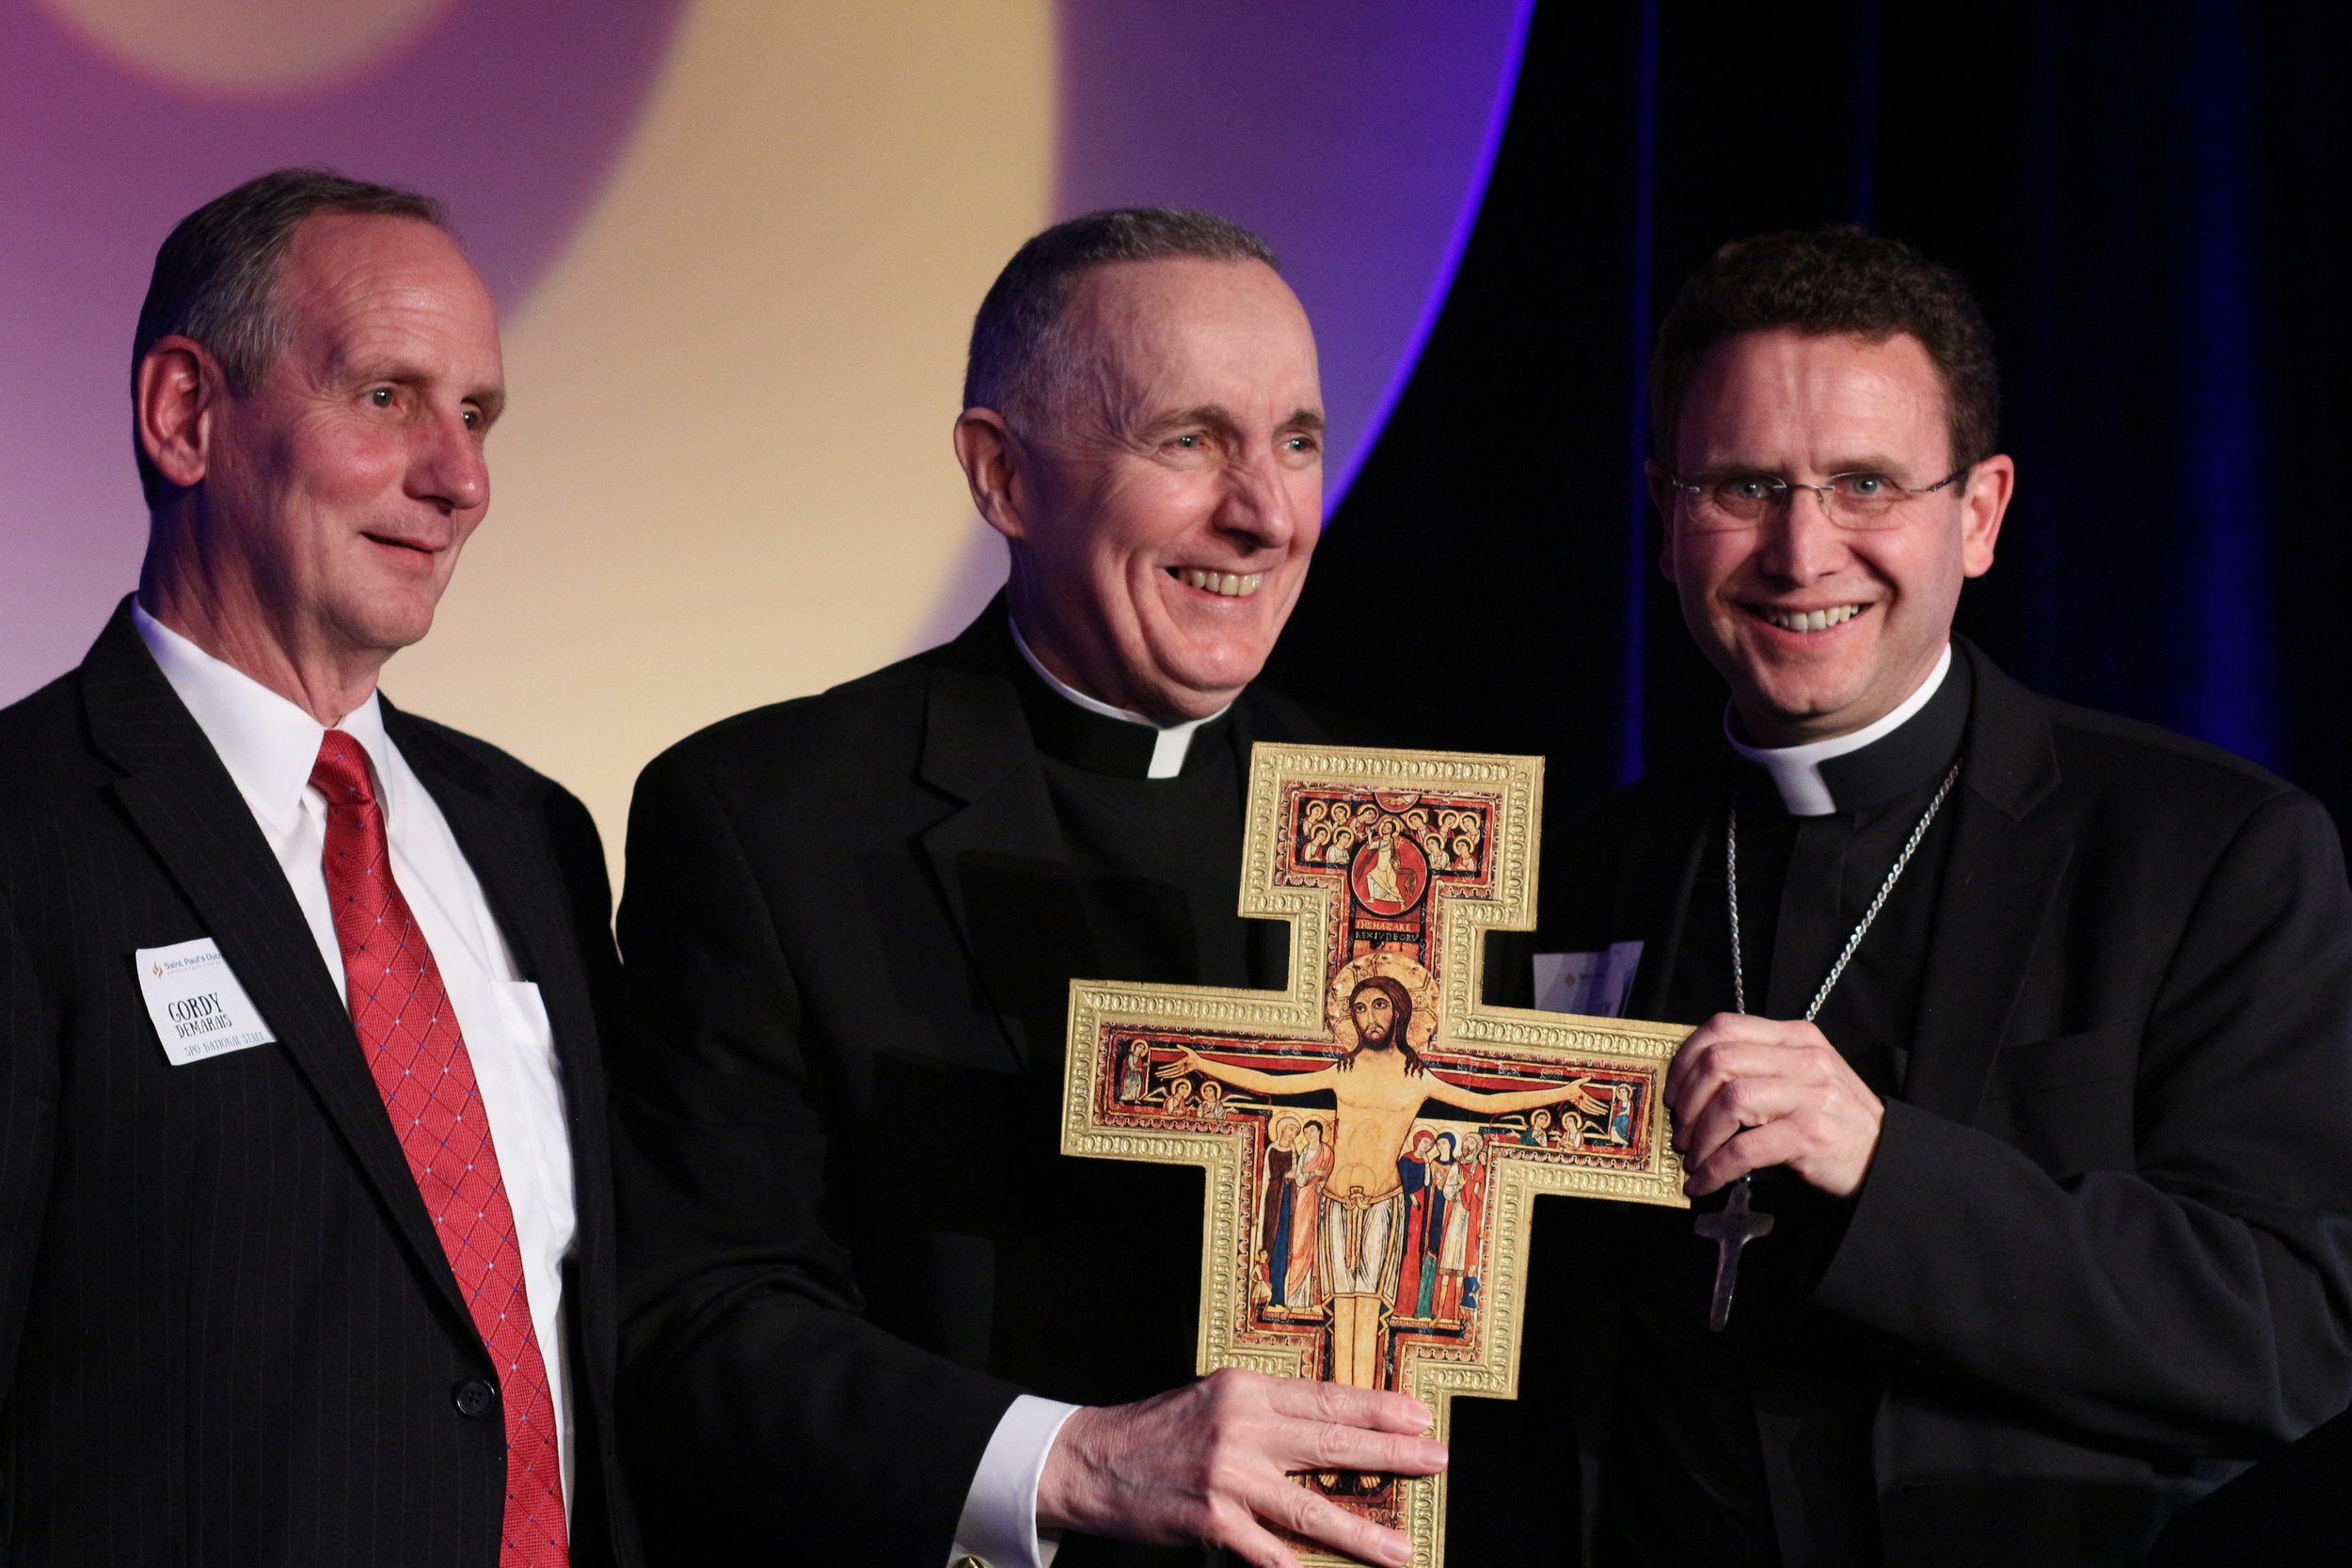 (l-r): Gordy DeMarais, Monsignor Callaghan, and Bishop Andrew Cozzens.